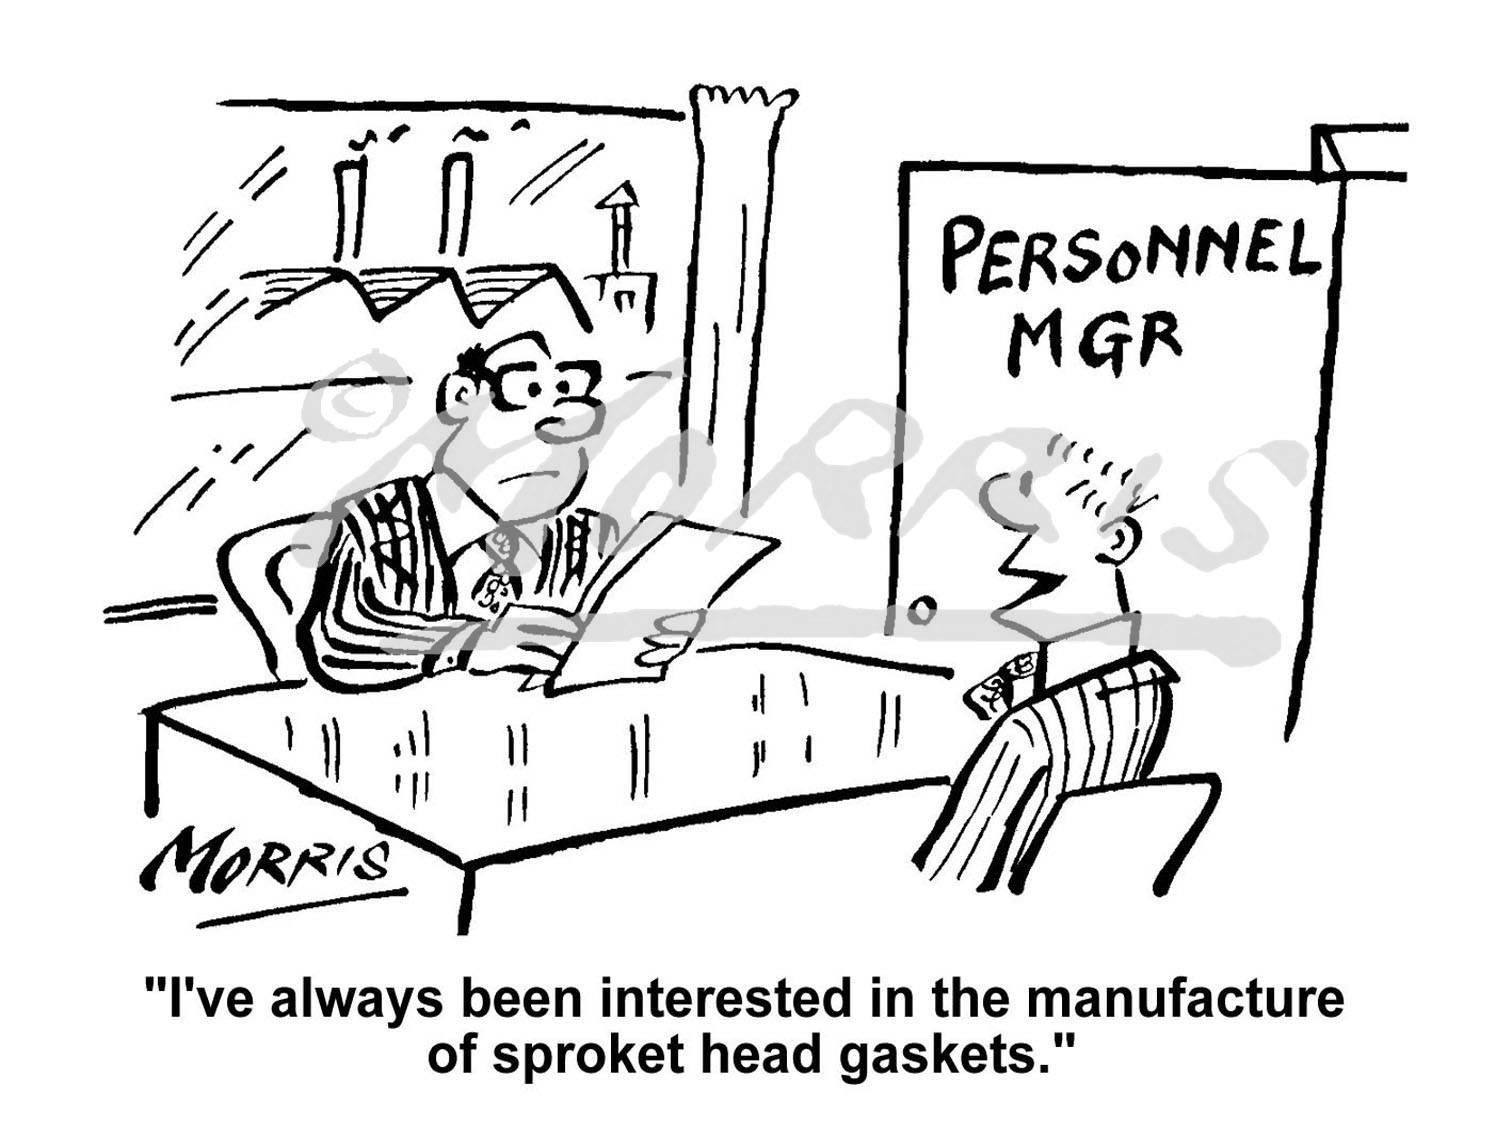 Personnel Manager interview cartoon – Ref: 2838bw